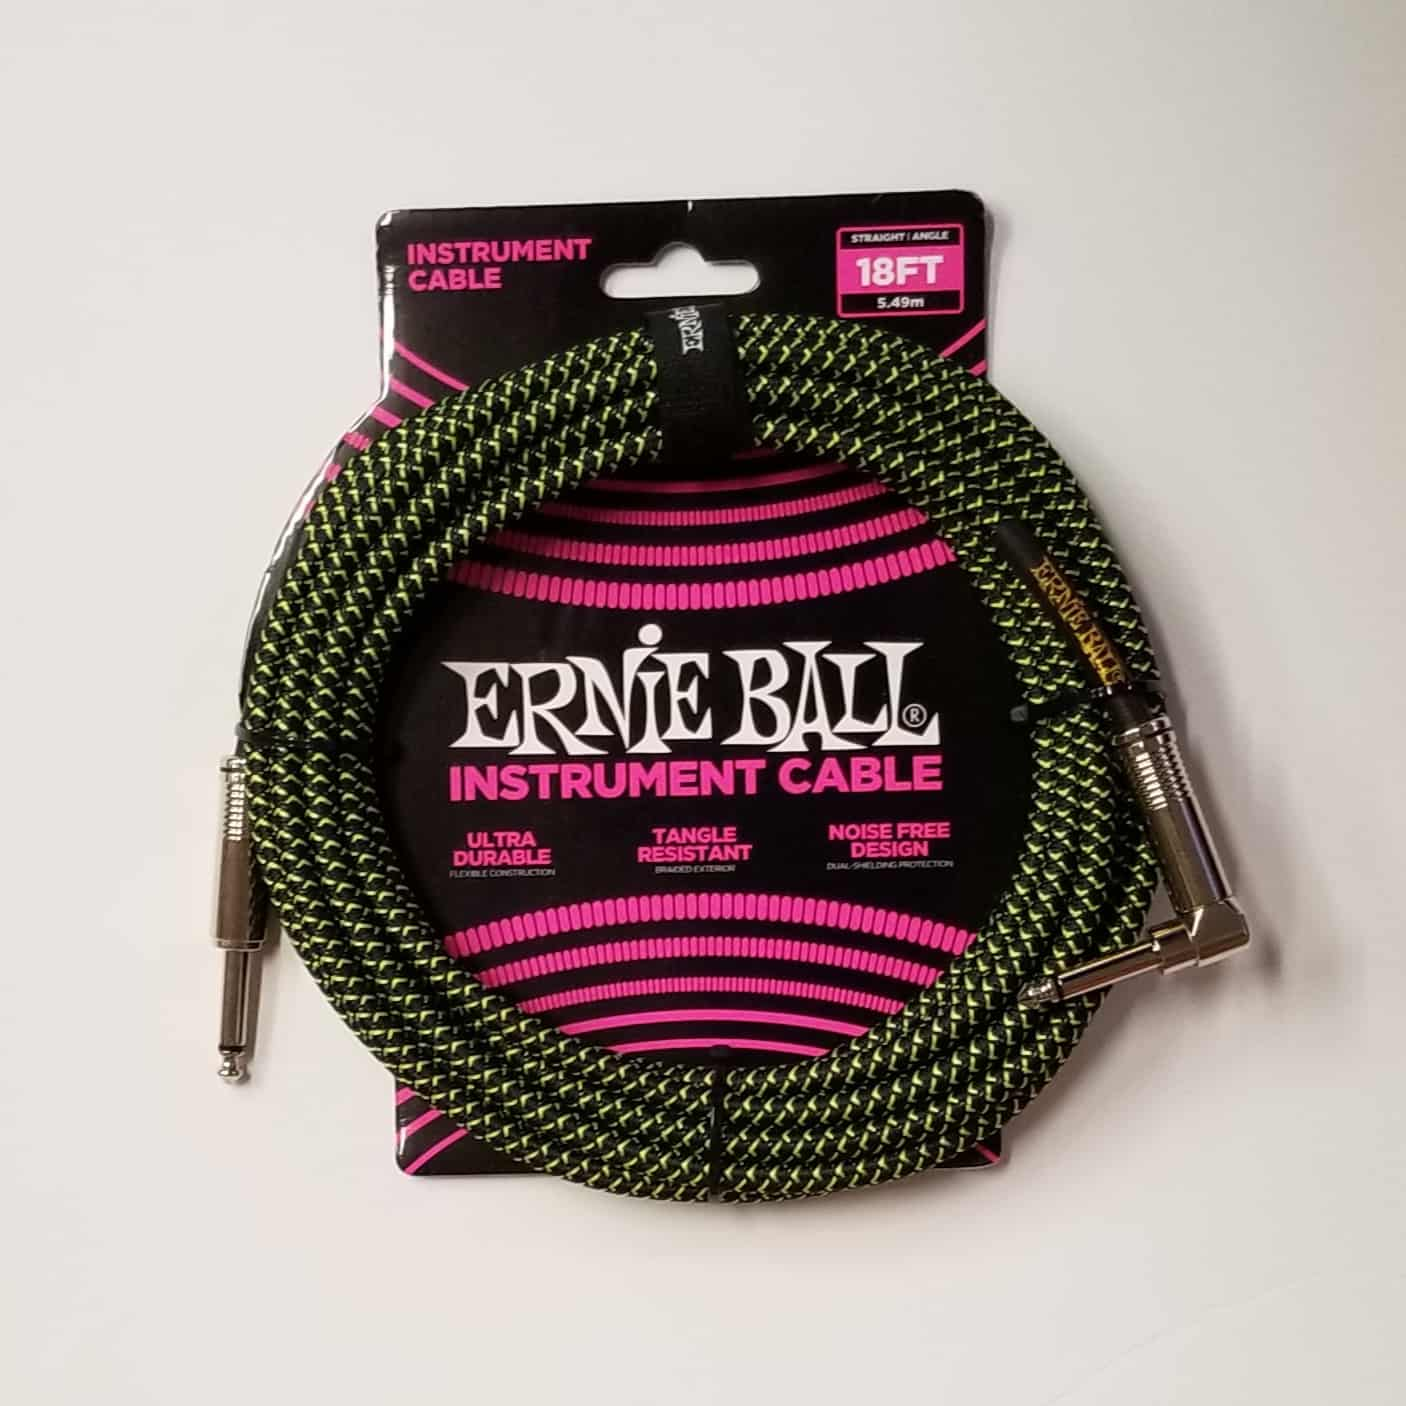 Ernie Ball braided instrument cable green 18 foot